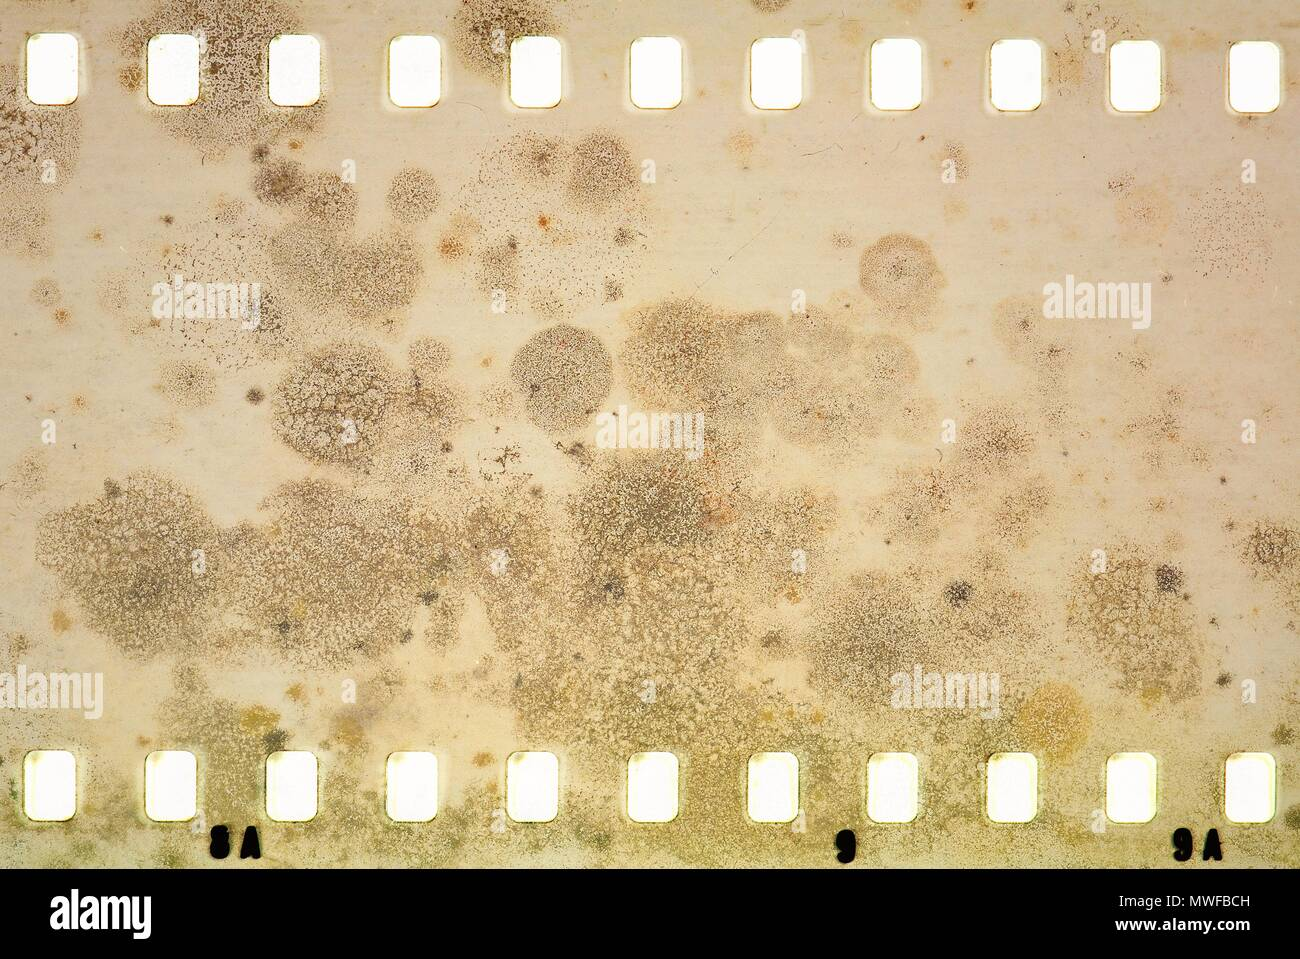 Grunge dripping cracked film strip frame in sepia tones. Mossy wall surface. - Stock Image